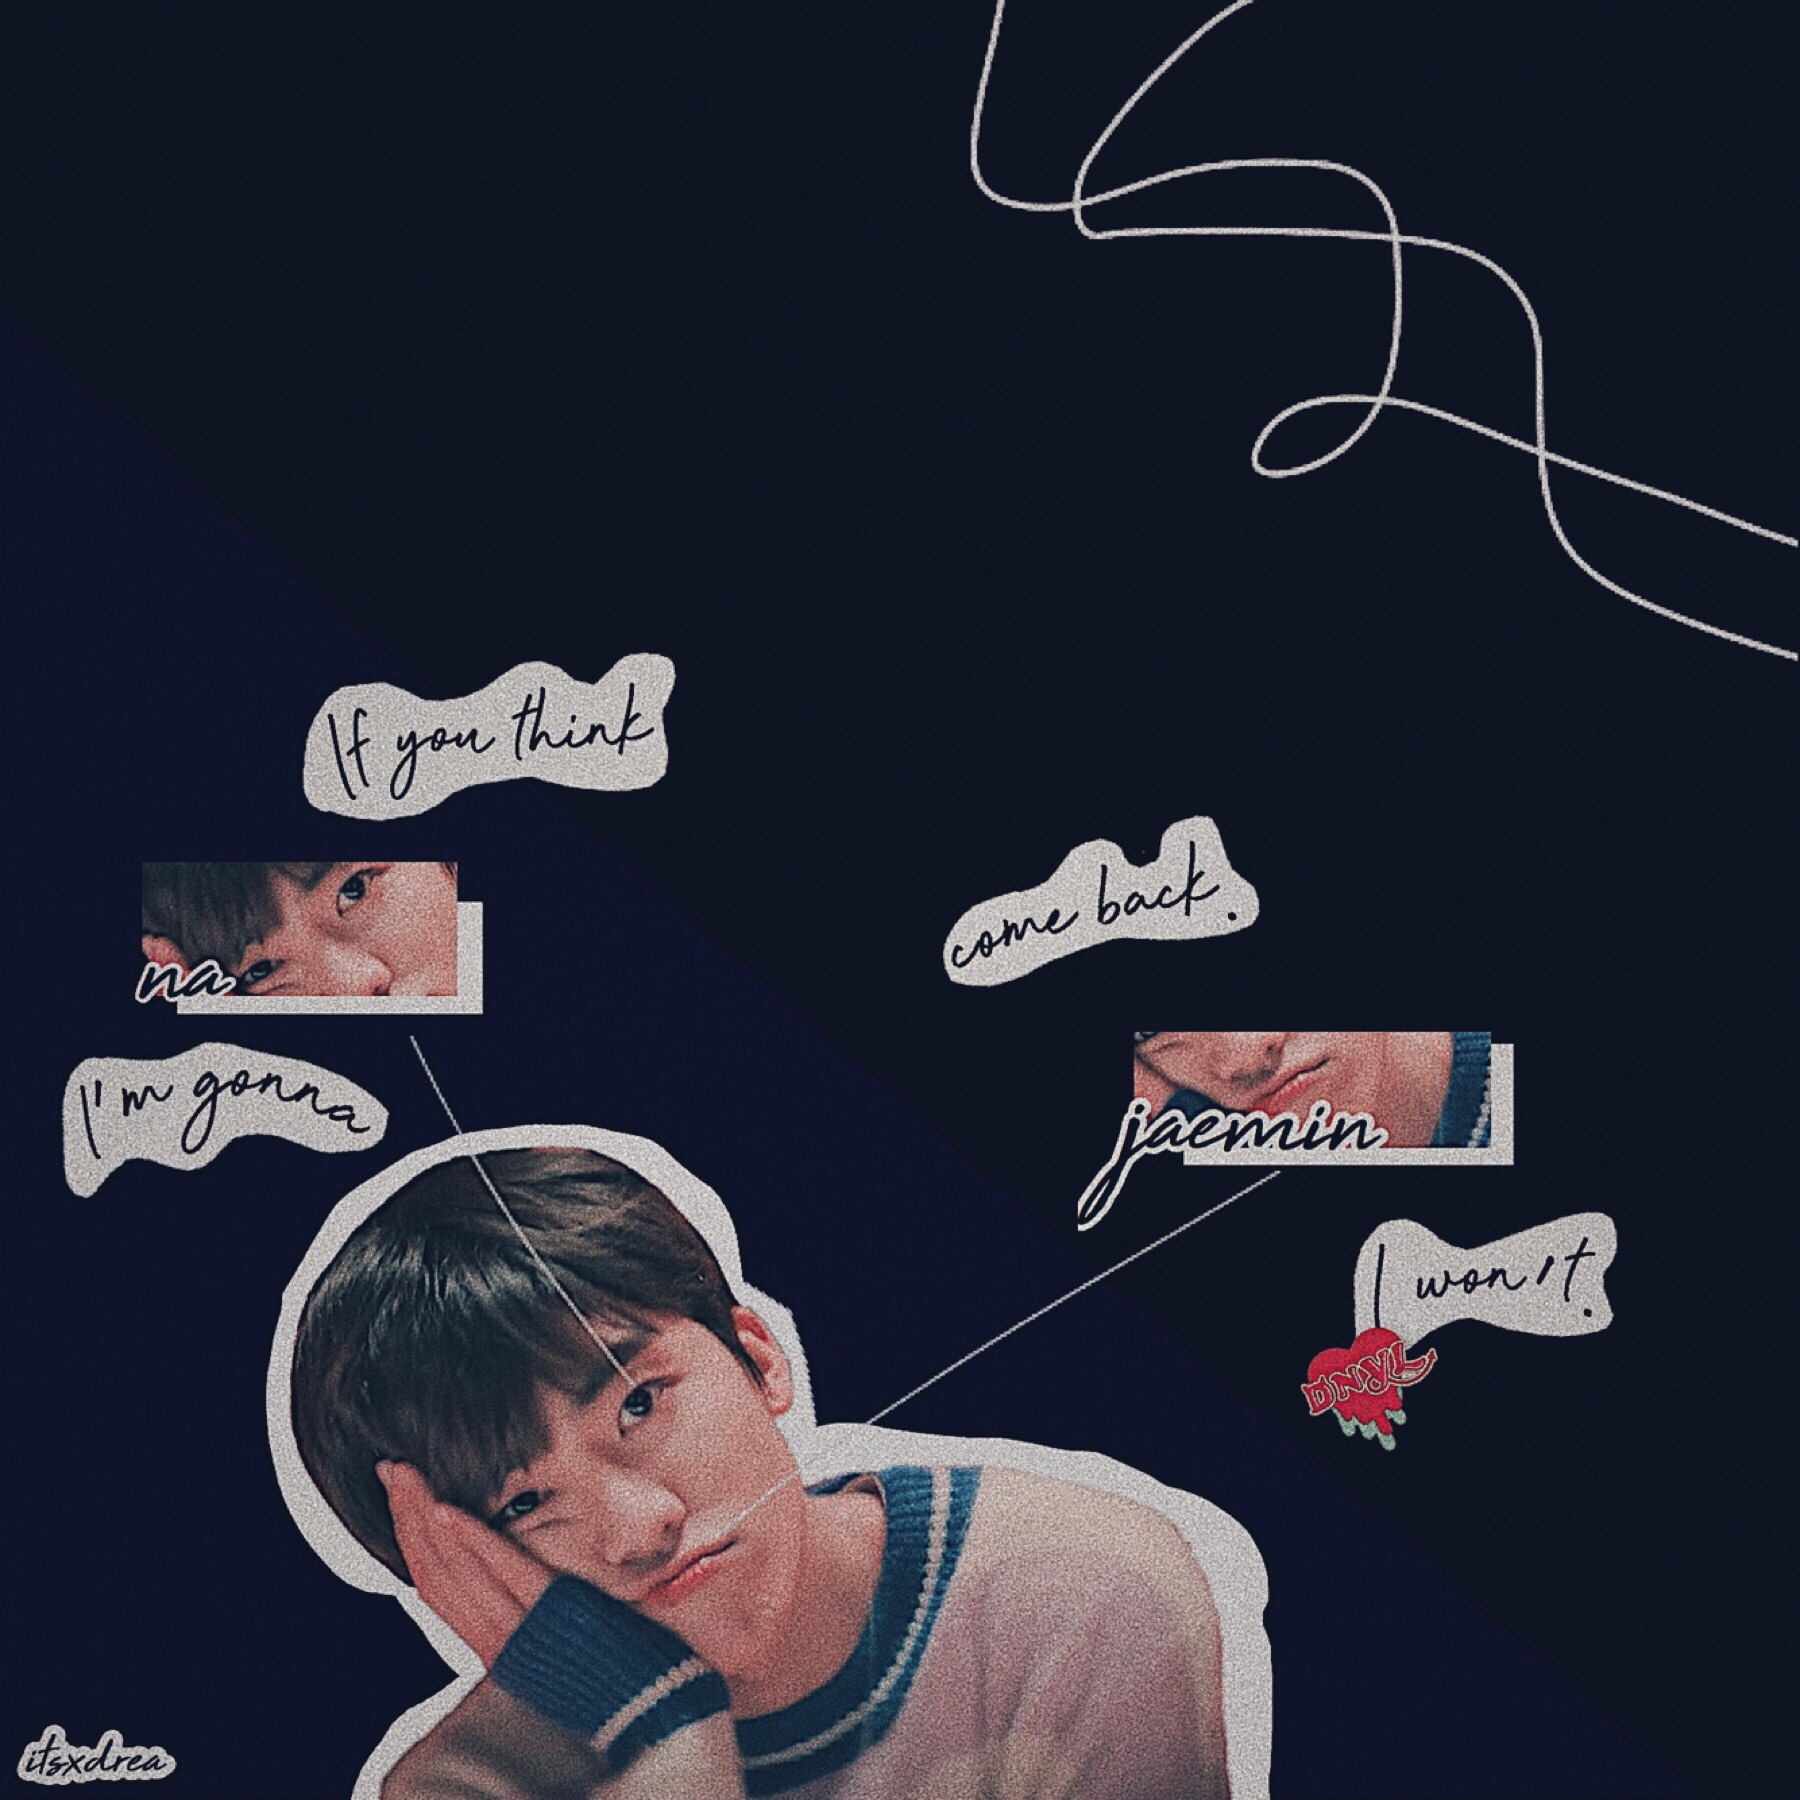 🖤 ✧god, i love him nd this song✧ this looks so bad the more i look at it ajdjakak. but i'm soft for jaemin so it's fine LOL. i'm planning on making a kpop games or contest, we'll see ;)